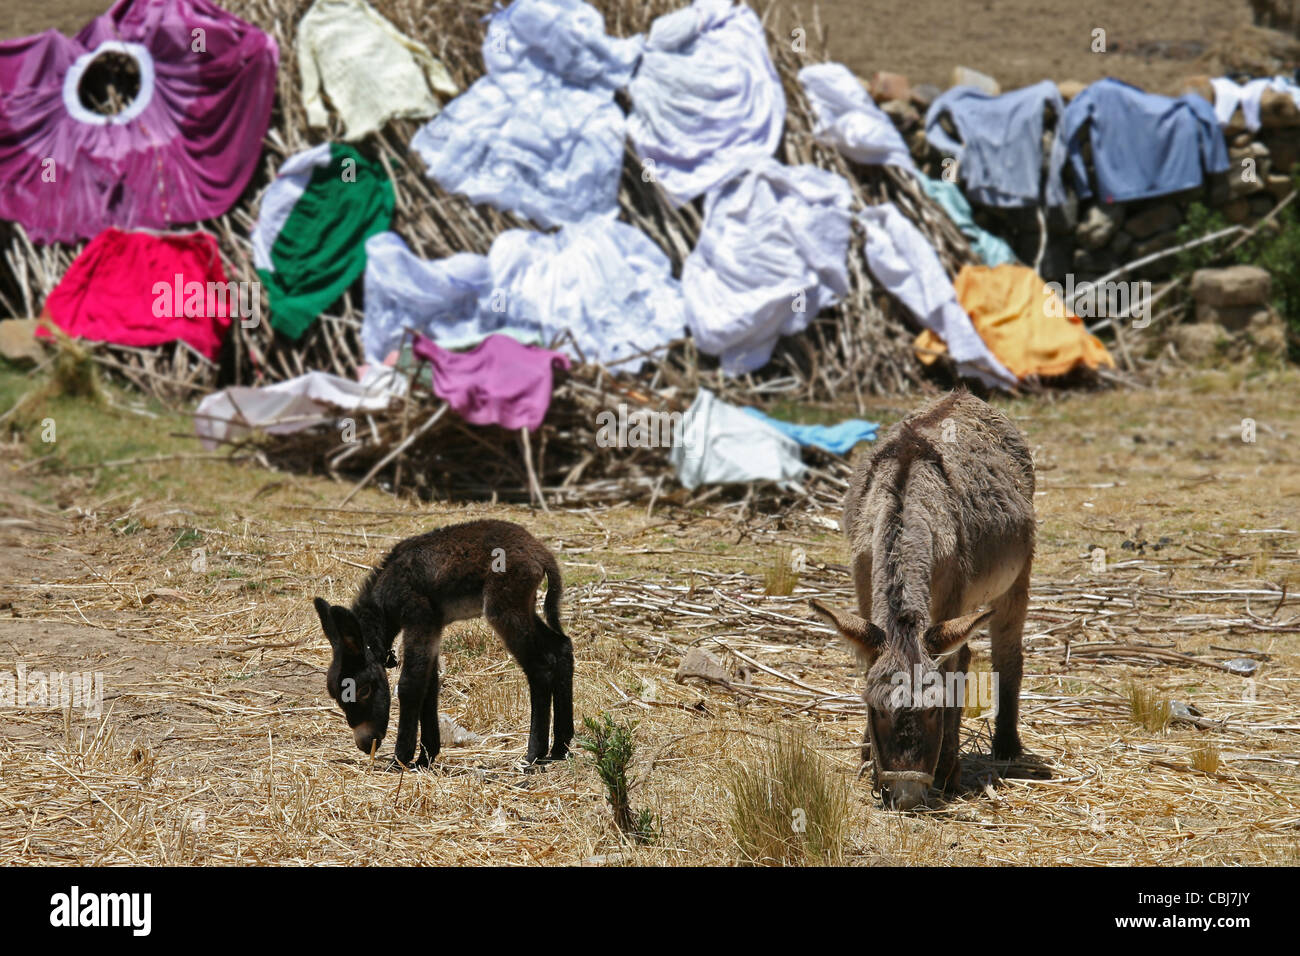 Laundry drying in the sun and donkeys grazing on the island Isla del Sol, Bolivia - Stock Image